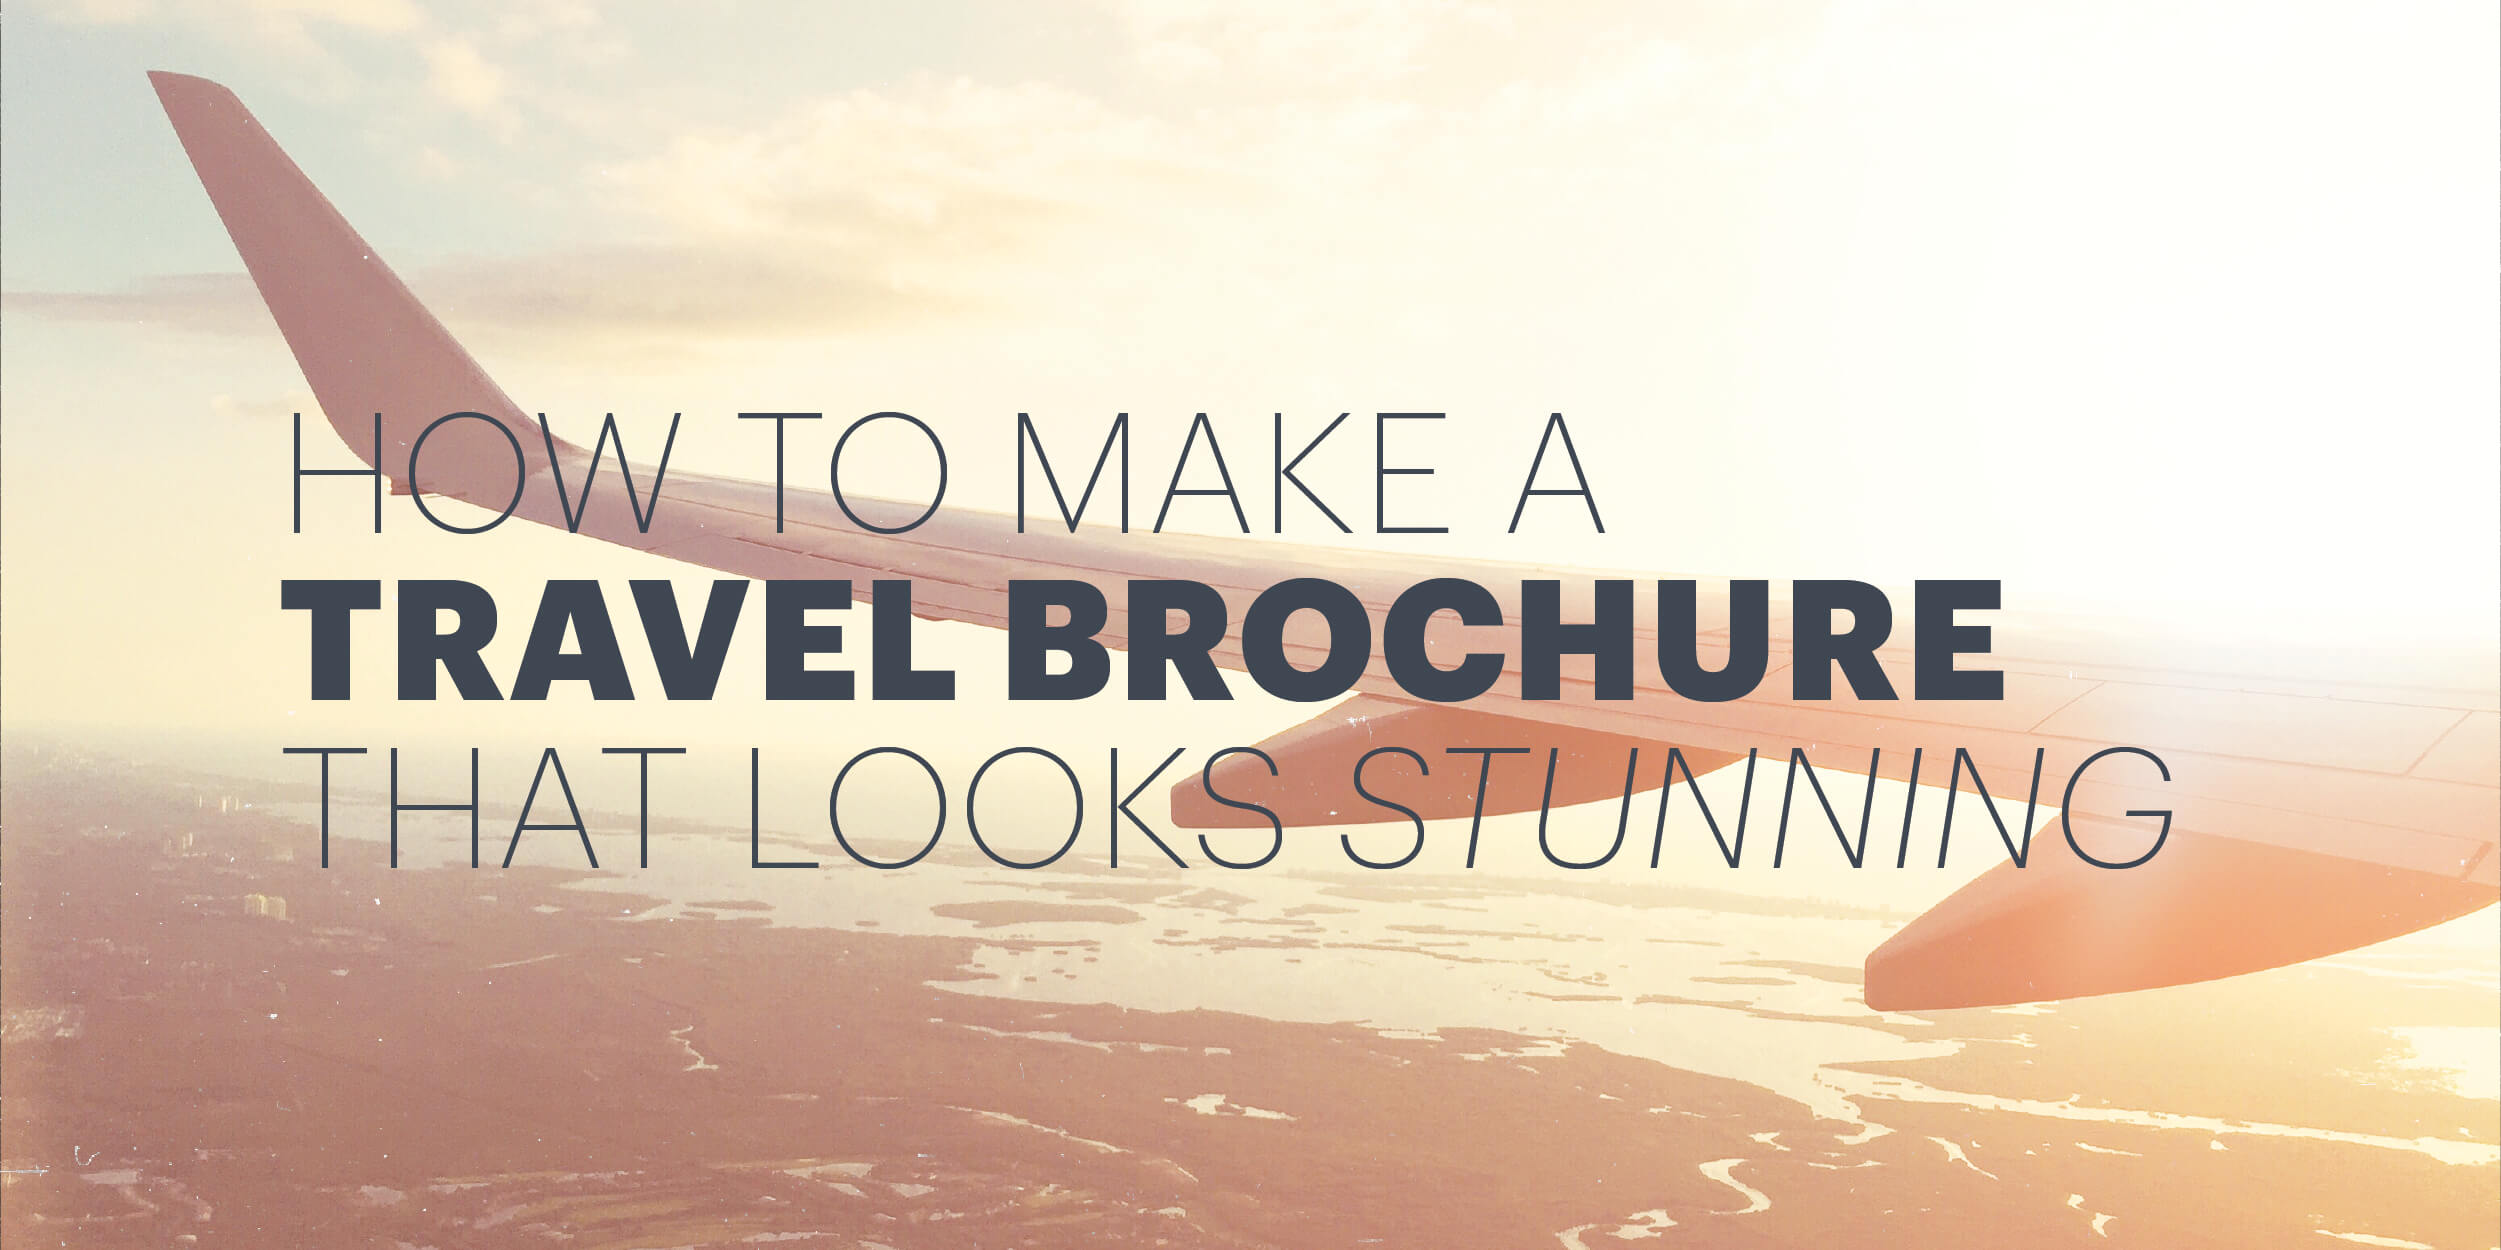 How To Make An Awesome Travel Brochure [With Free Templates] Pertaining To Travel Brochure Template For Students